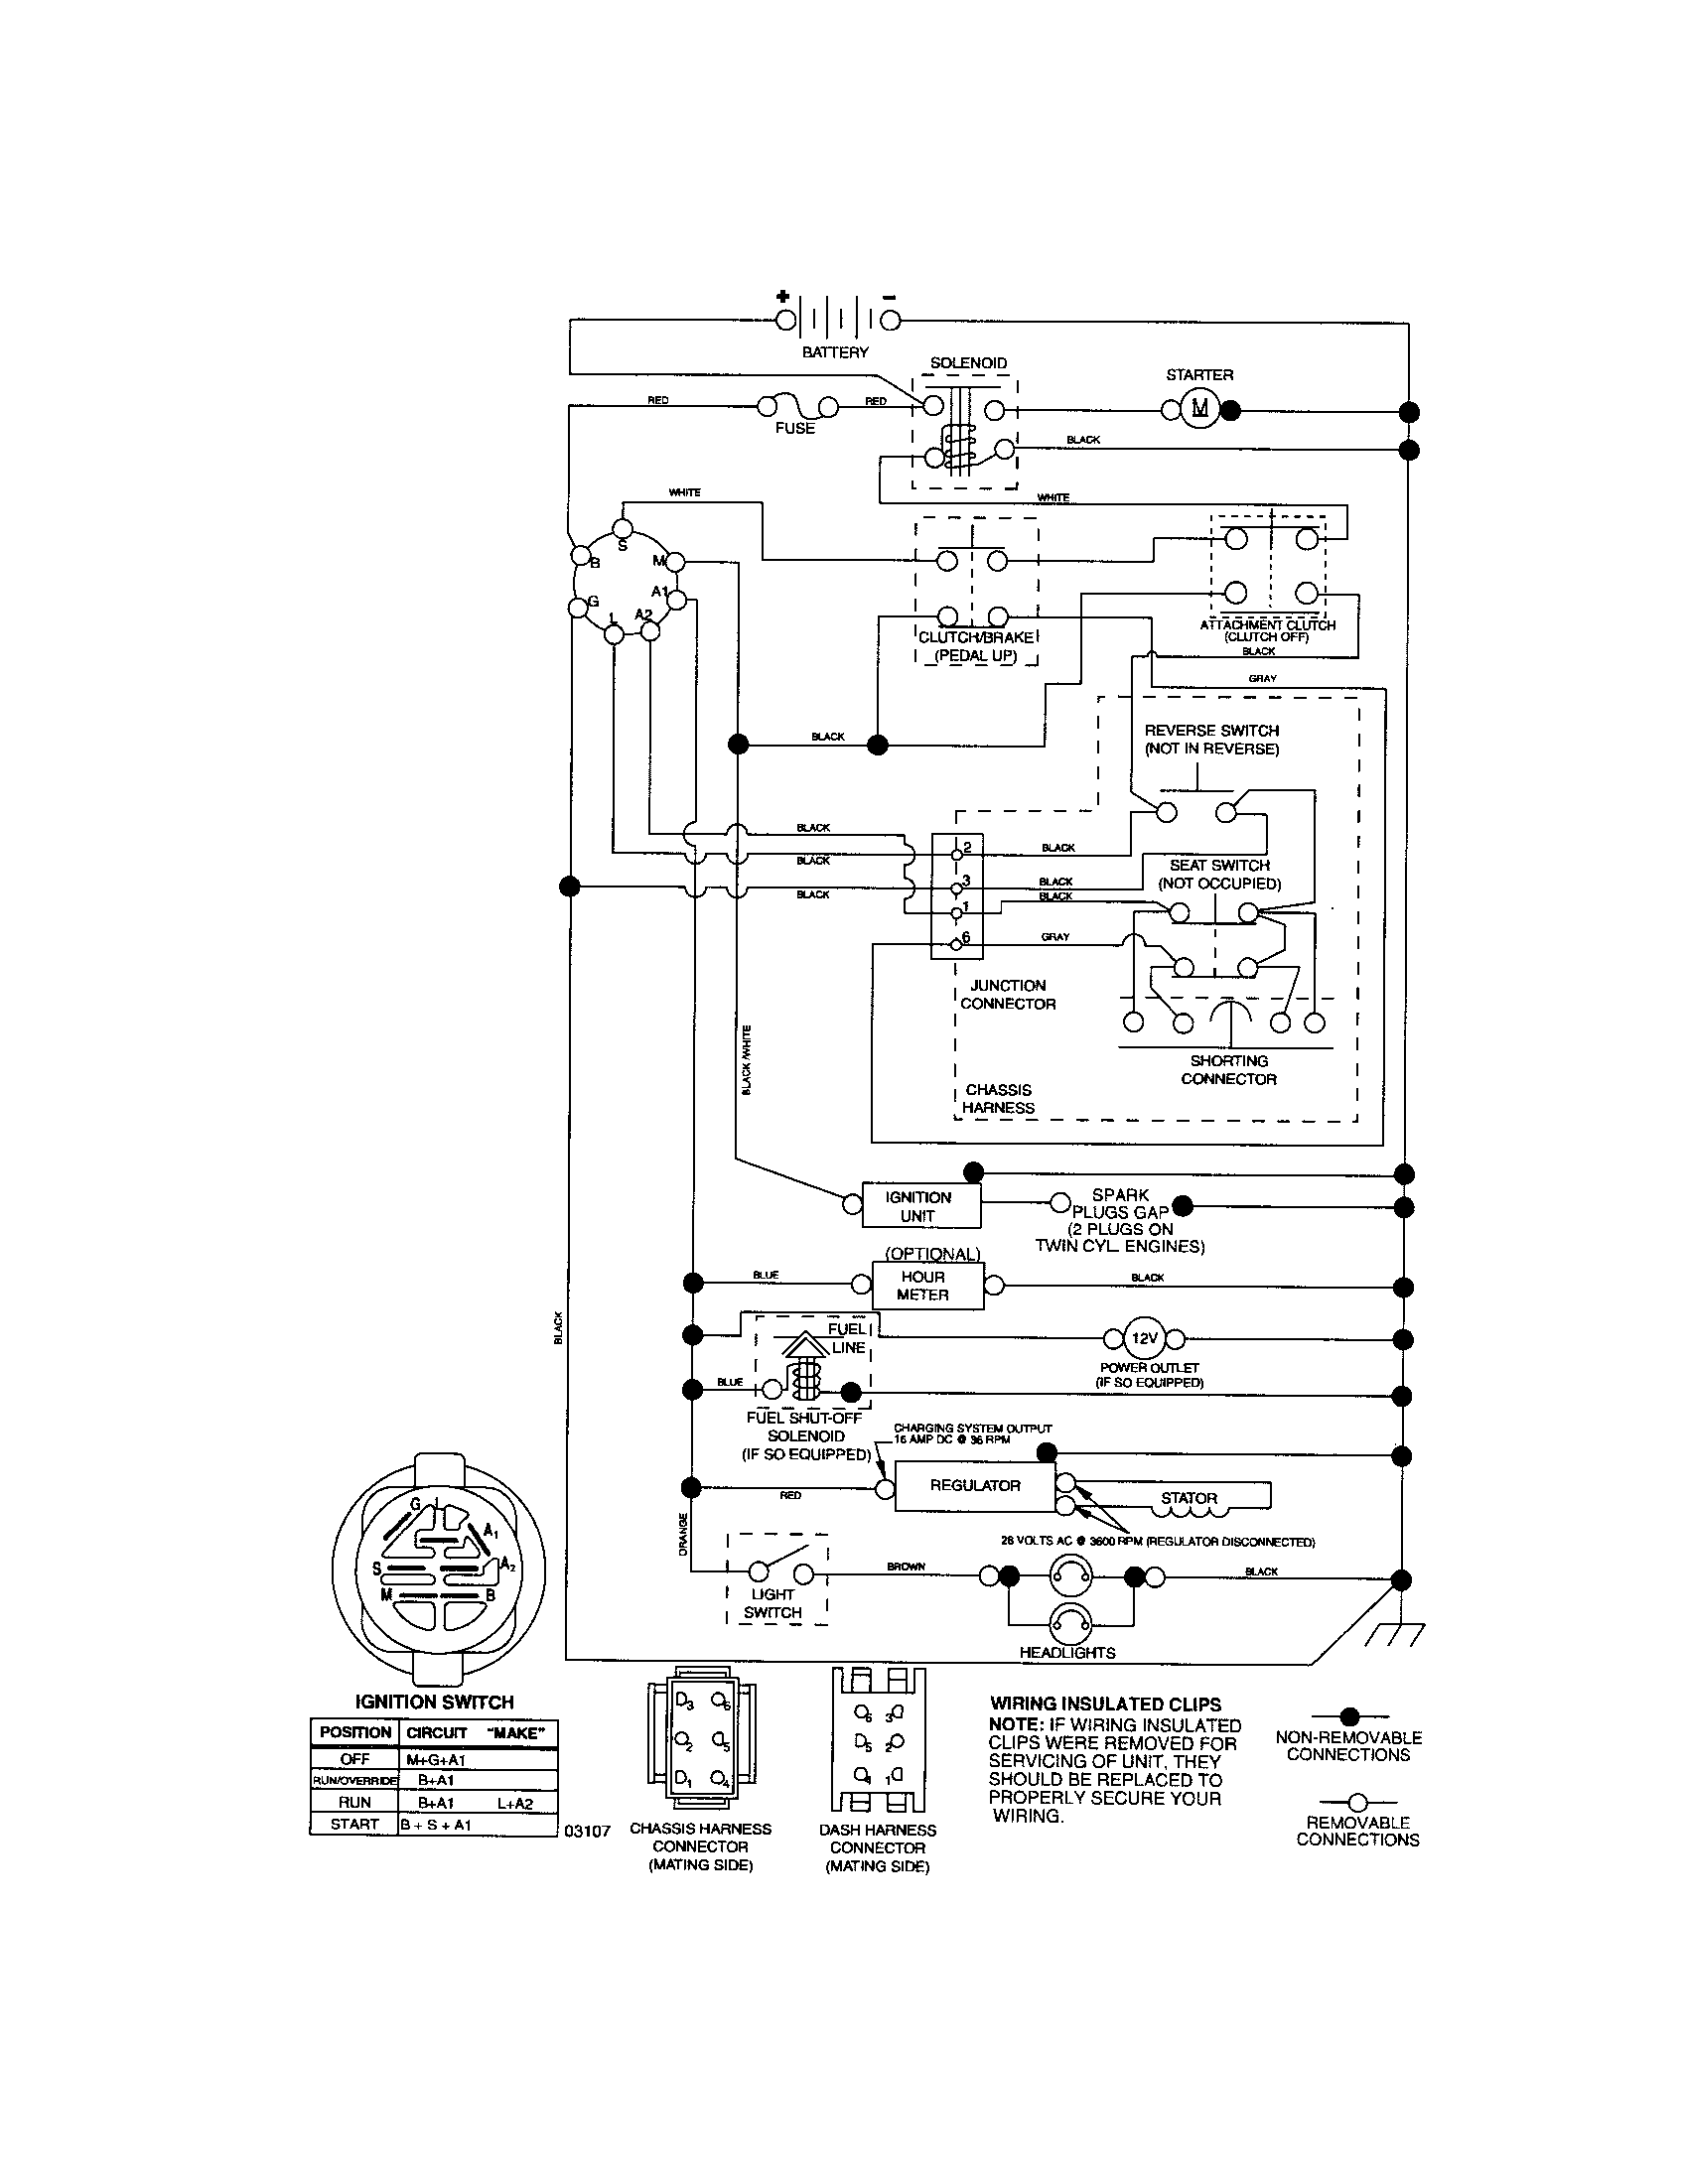 hight resolution of wiring diagram lawn tractor craftsman wiring diagrams craftsman riding mower electrical diagram wiring diagram craftsman wiring